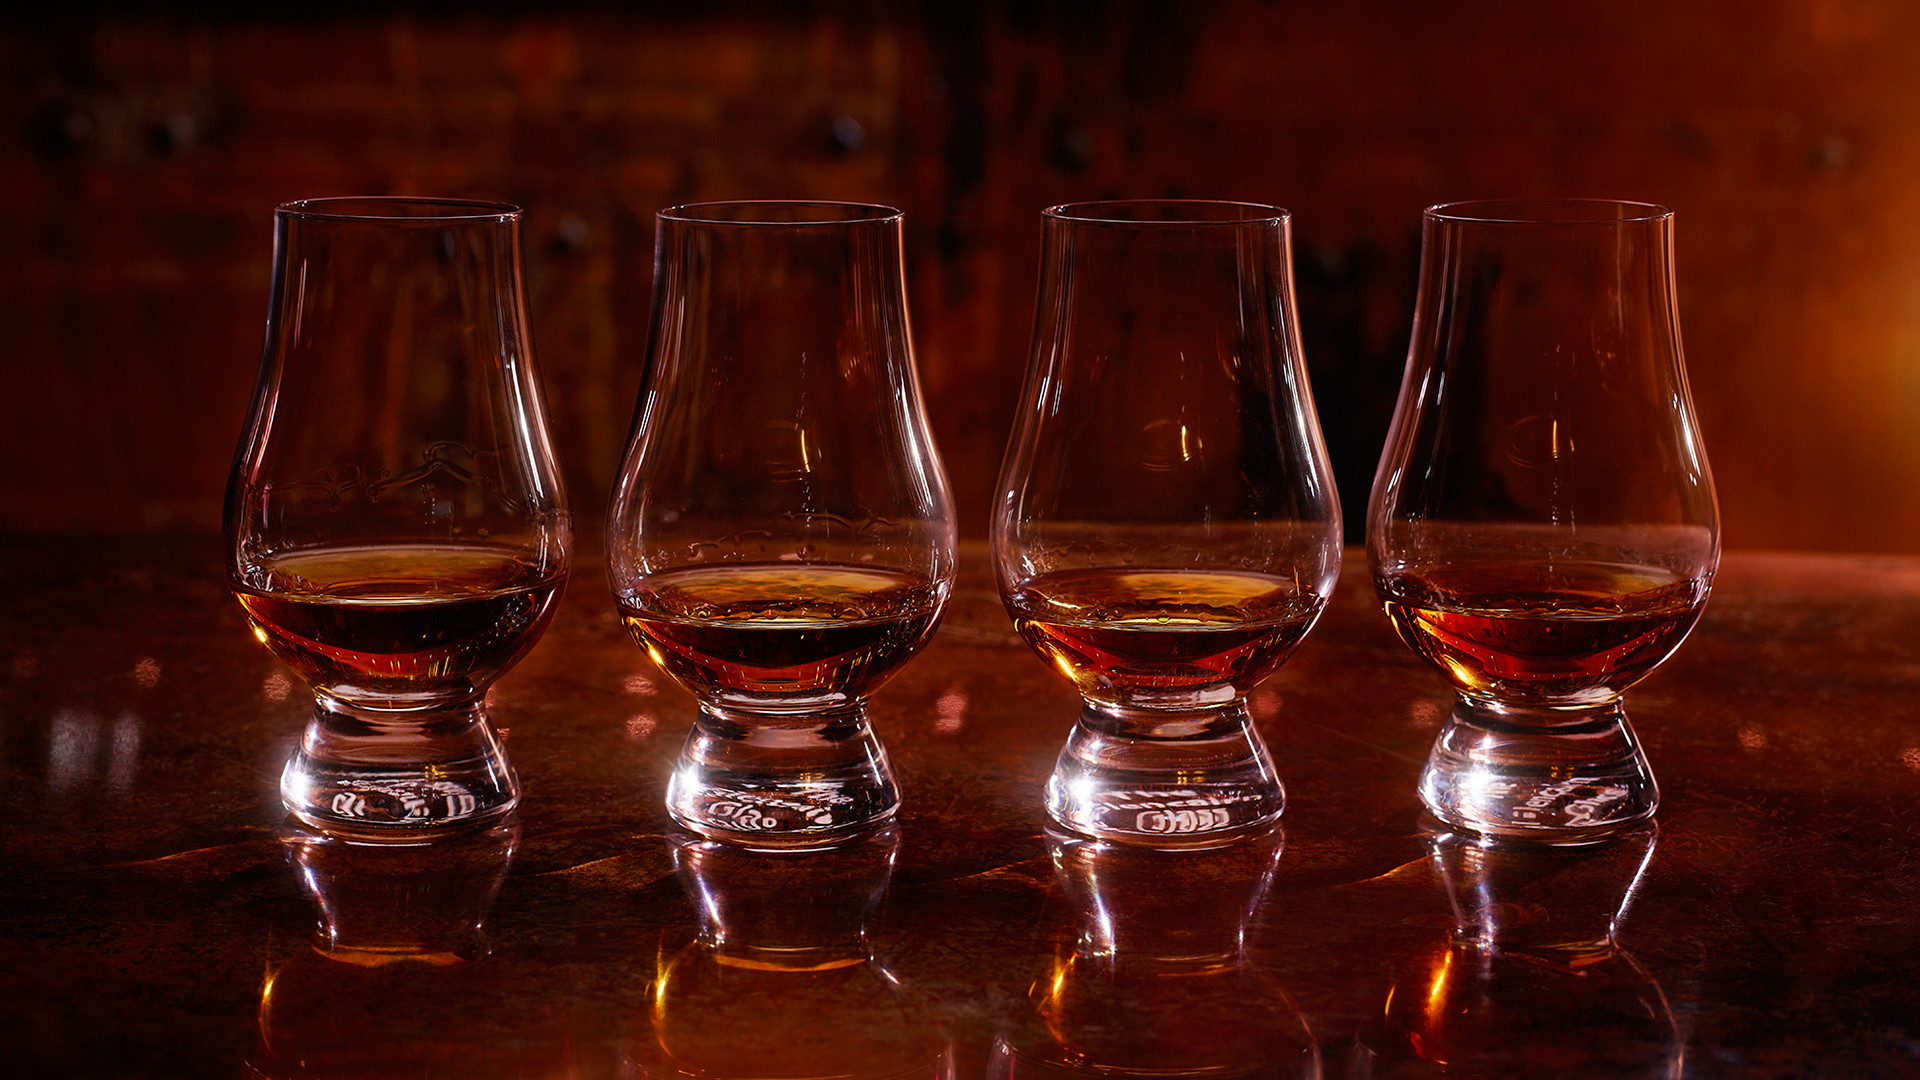 Buffalo Trace's whiskey pairing dinner at Barbecoa